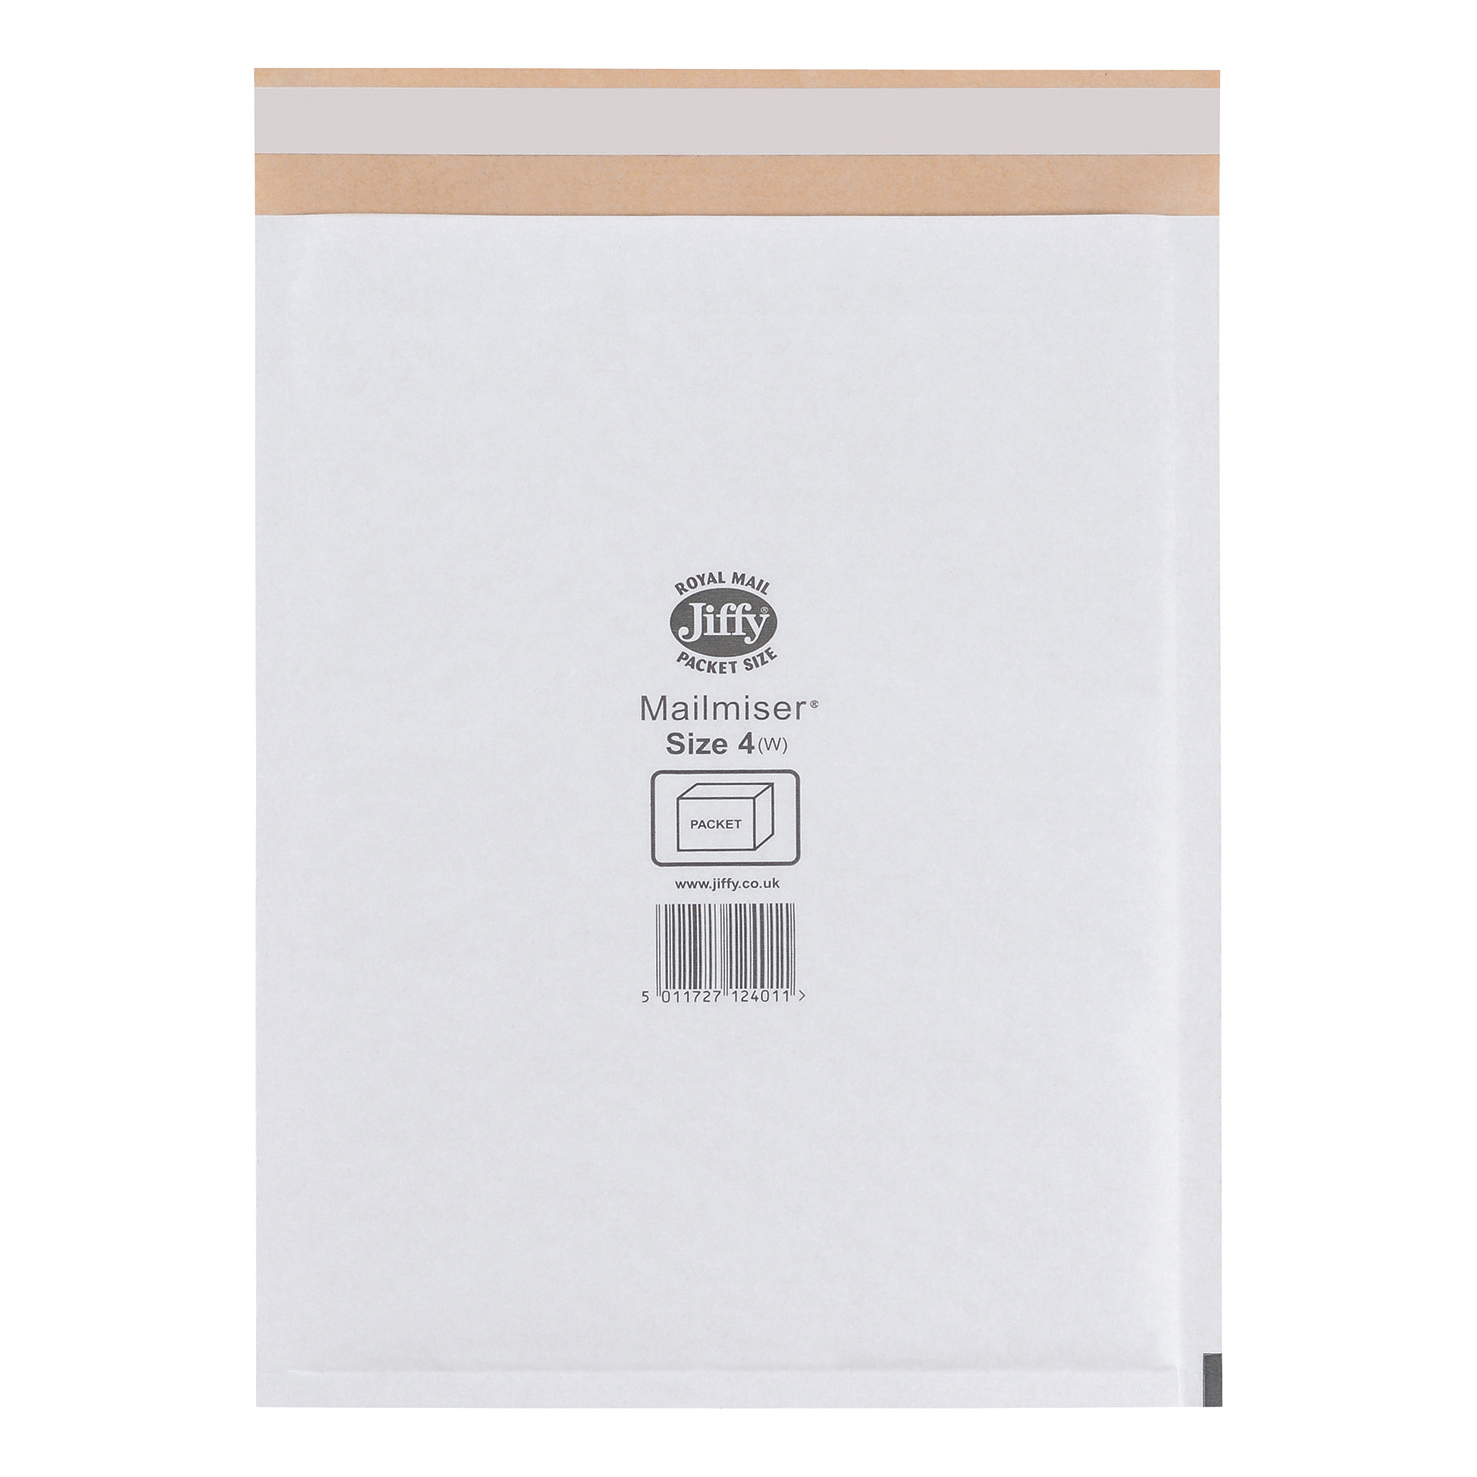 Jiffy Mailmiser Protective Envelopes Bubble-lined Size 4 P&S 240x320mm White Ref JMM-WH-4 Pack 50